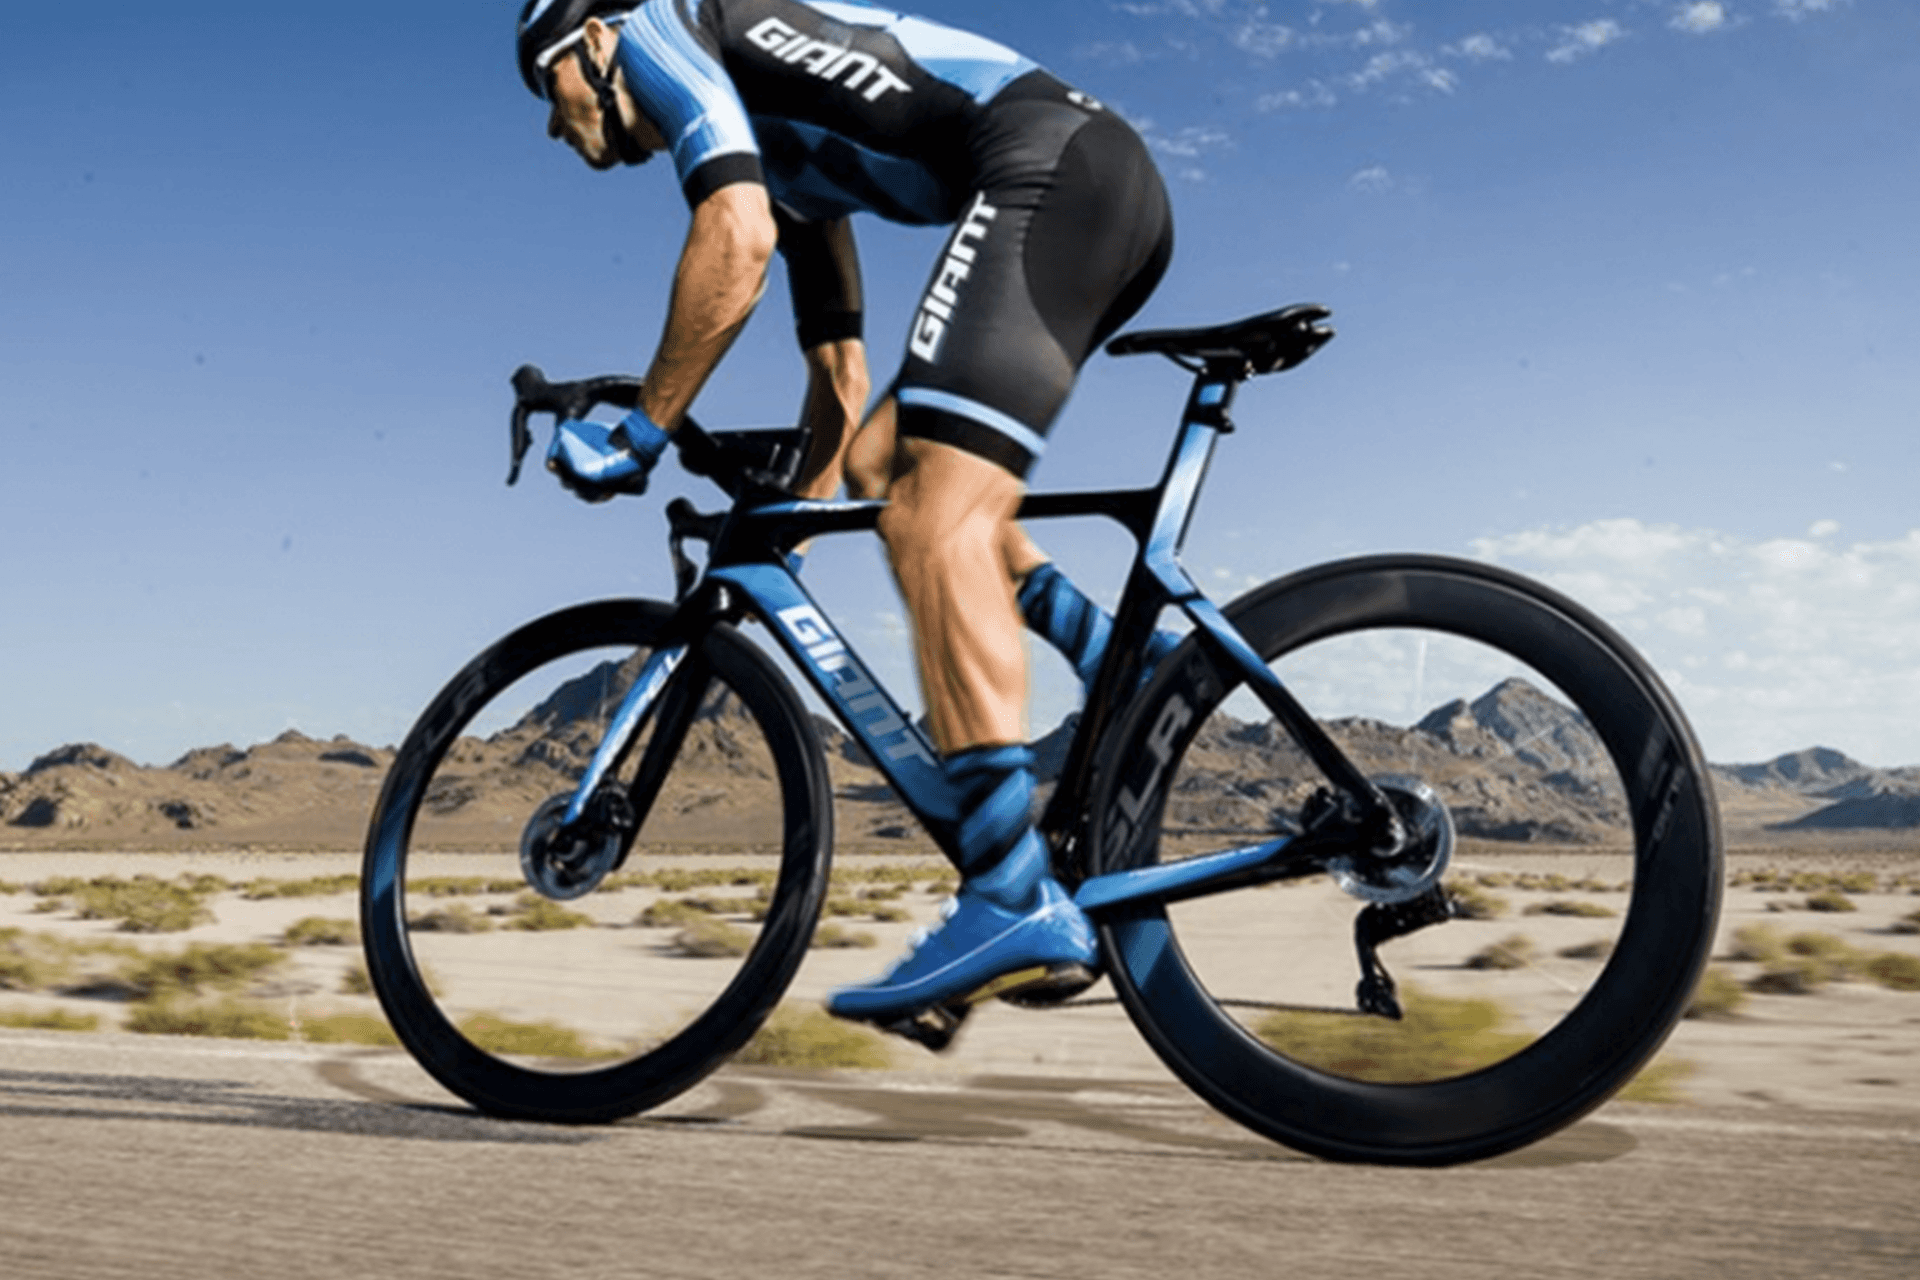 cb248eac6fe Giant Bicycles, a world leader in cycling technology, has unveiled its  all-new Propel Disc range of aero road bikes.